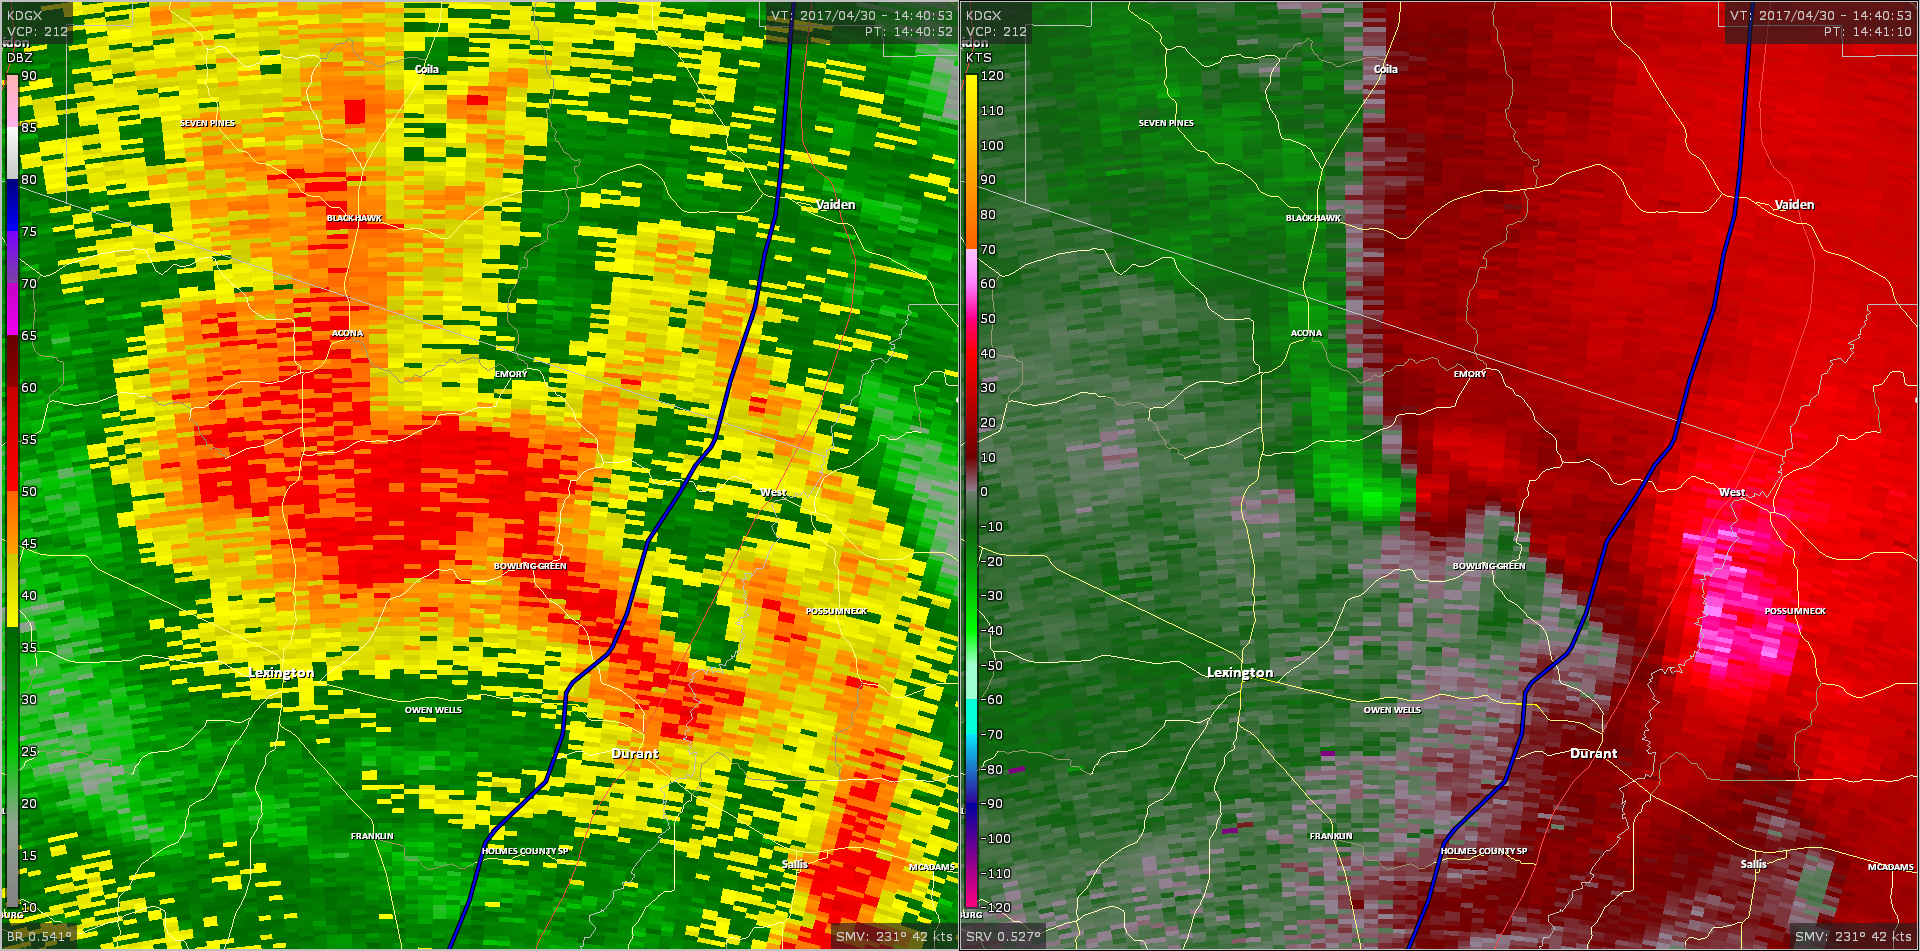 Radar - Holmes and Carroll County Tornado